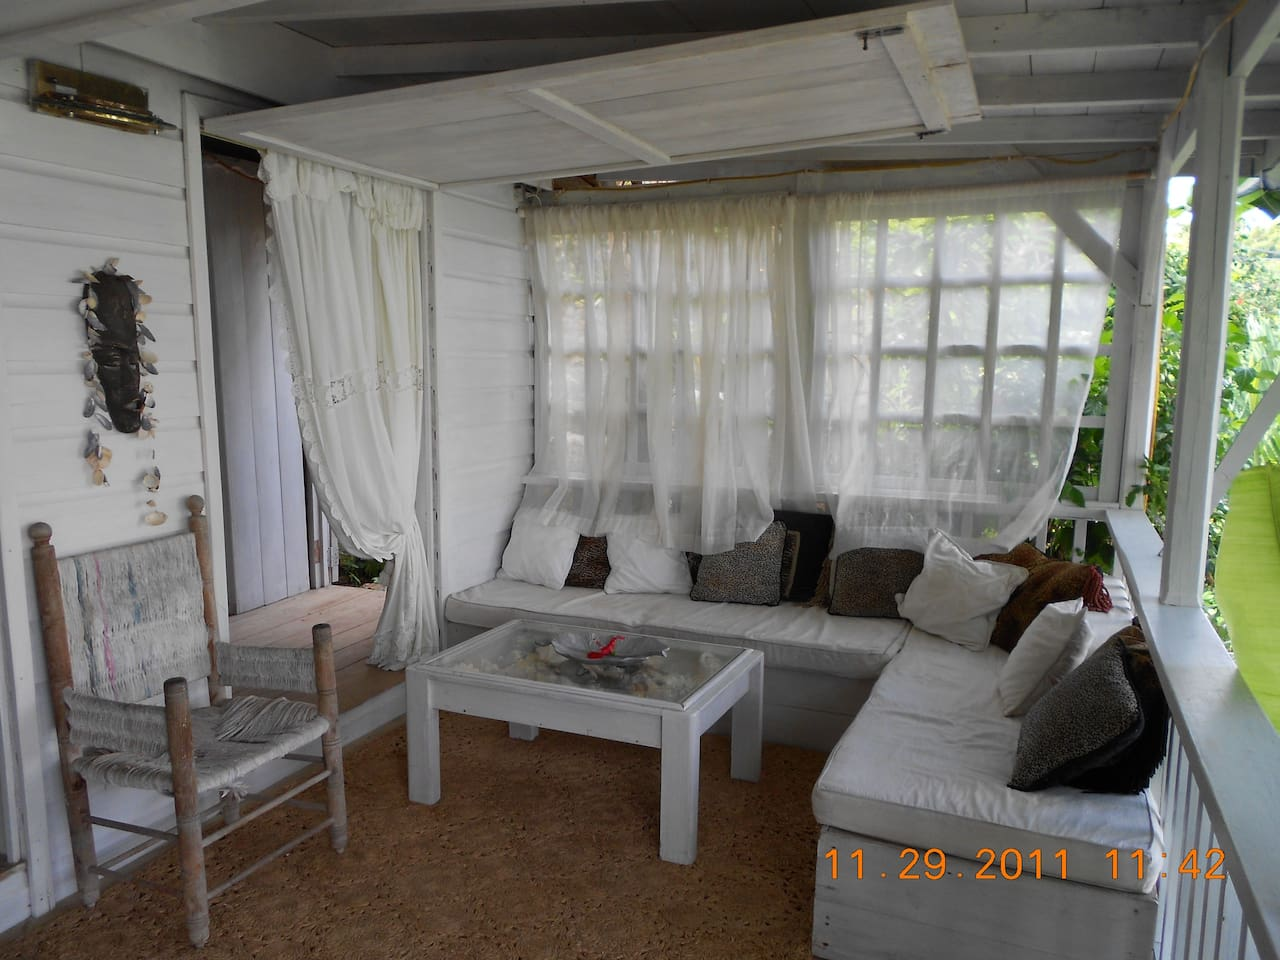 The lounge area in Rum Jungle at The Pineapple House Property, Antigua, West Indies.